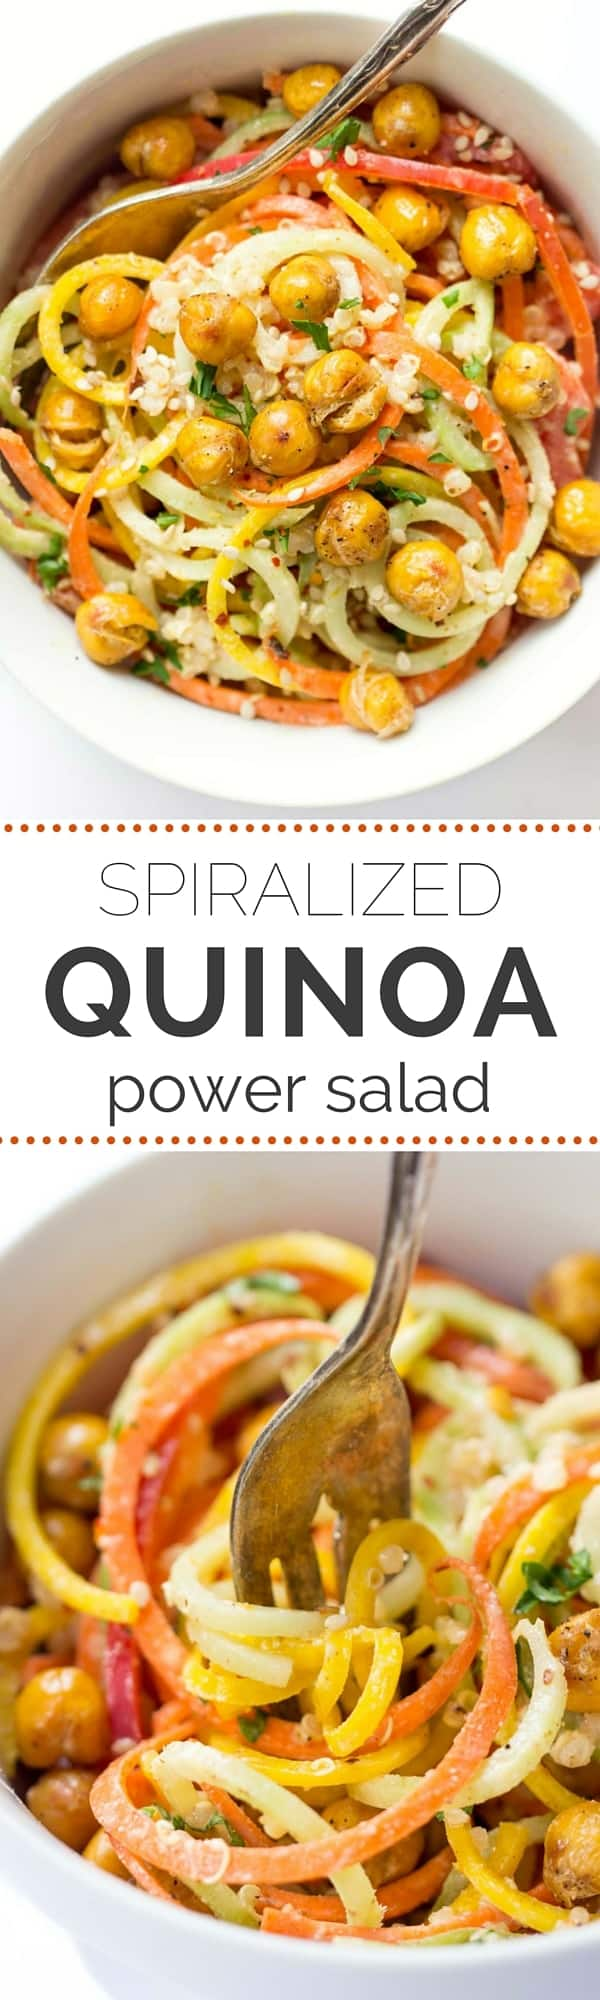 QUINOA POWER SALAD with spiralized carrots, beets and peppers PLUS crispy roasted chickpeas and an almond butter dressing [vegan + gf]